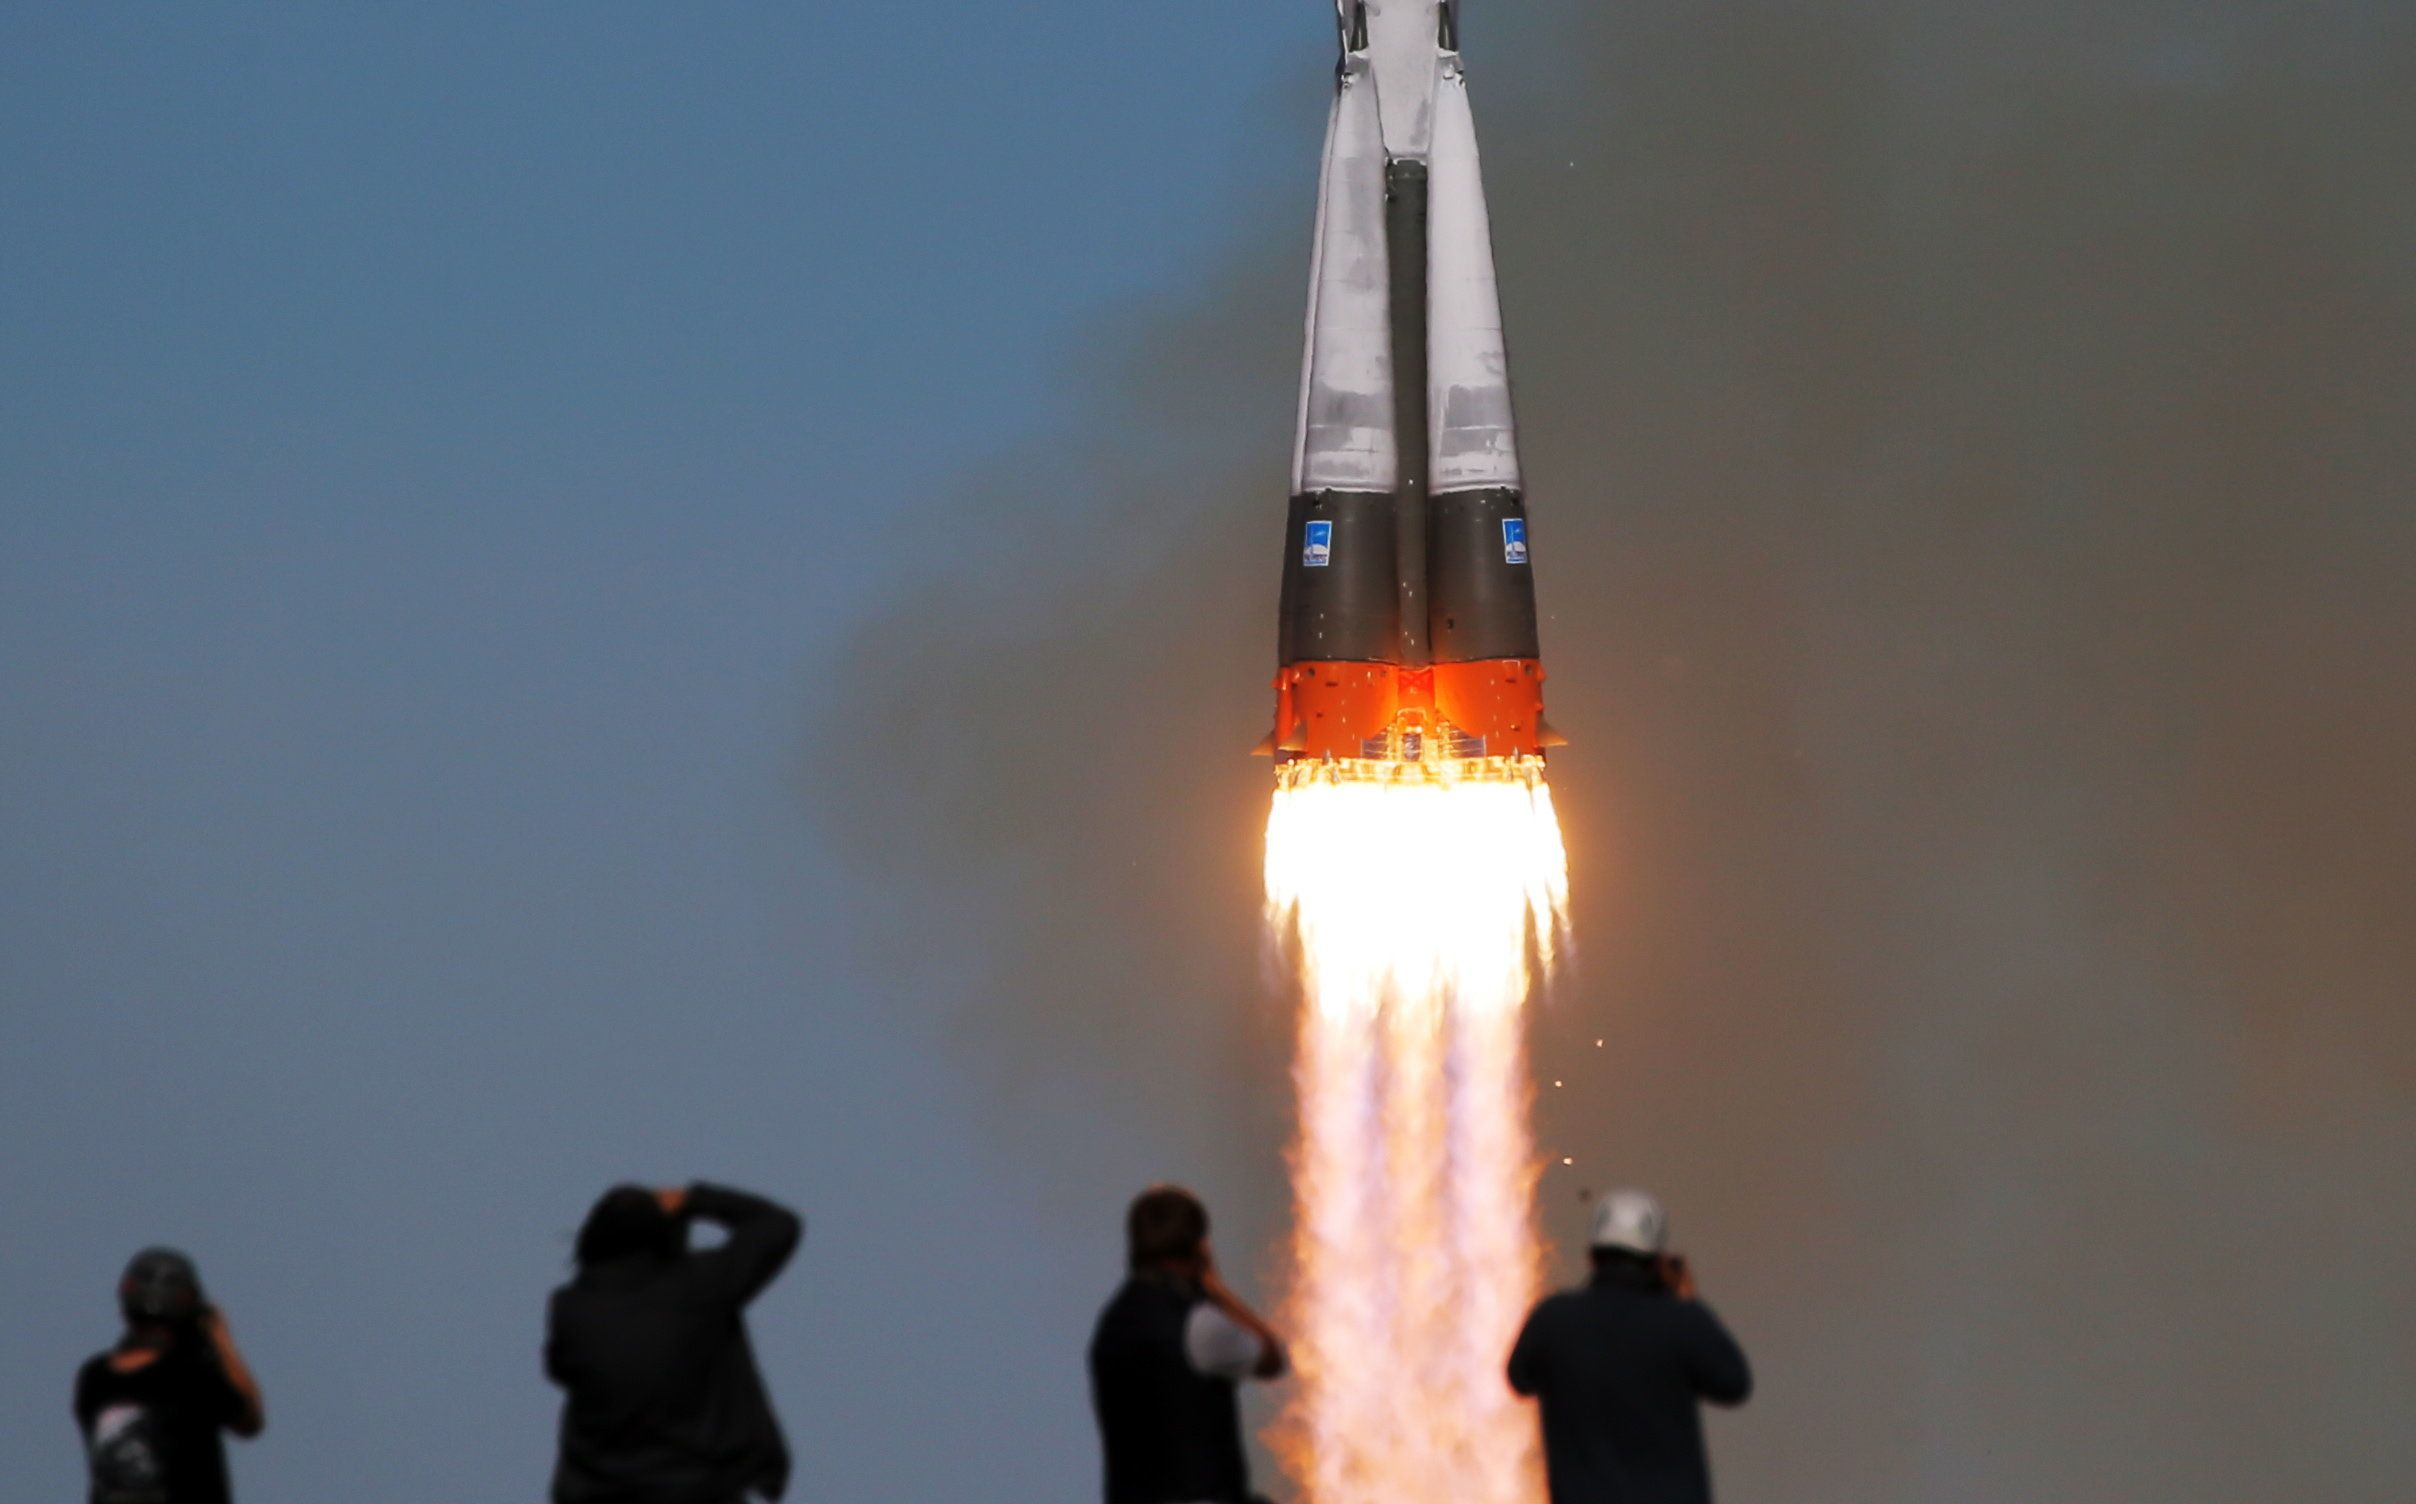 After Rocket Failure, Astronauts To Go Back Into Space: Russian Official